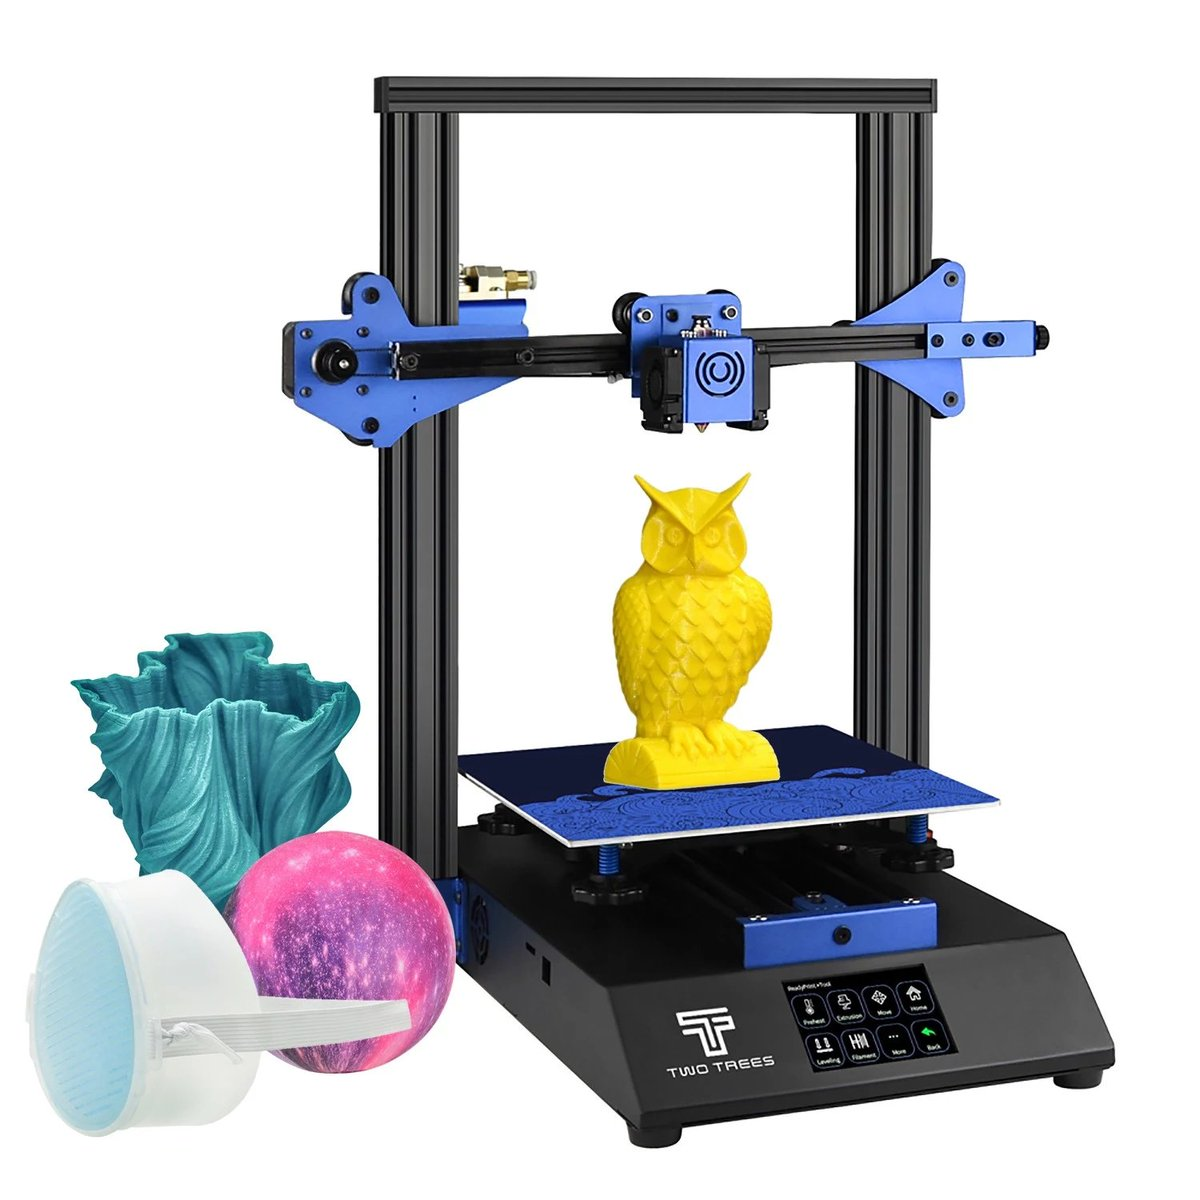 TWO TREES BLUER #3DPrinter #DIY Kit Sheet Metal Structure Silent Printing 235*235*280mm   Heated Bed Resume Print Filament Run Out Detection Function 4G TF Card  $190.63   #cashback -   #3dprinter #3dprint #3dmodelling #homework